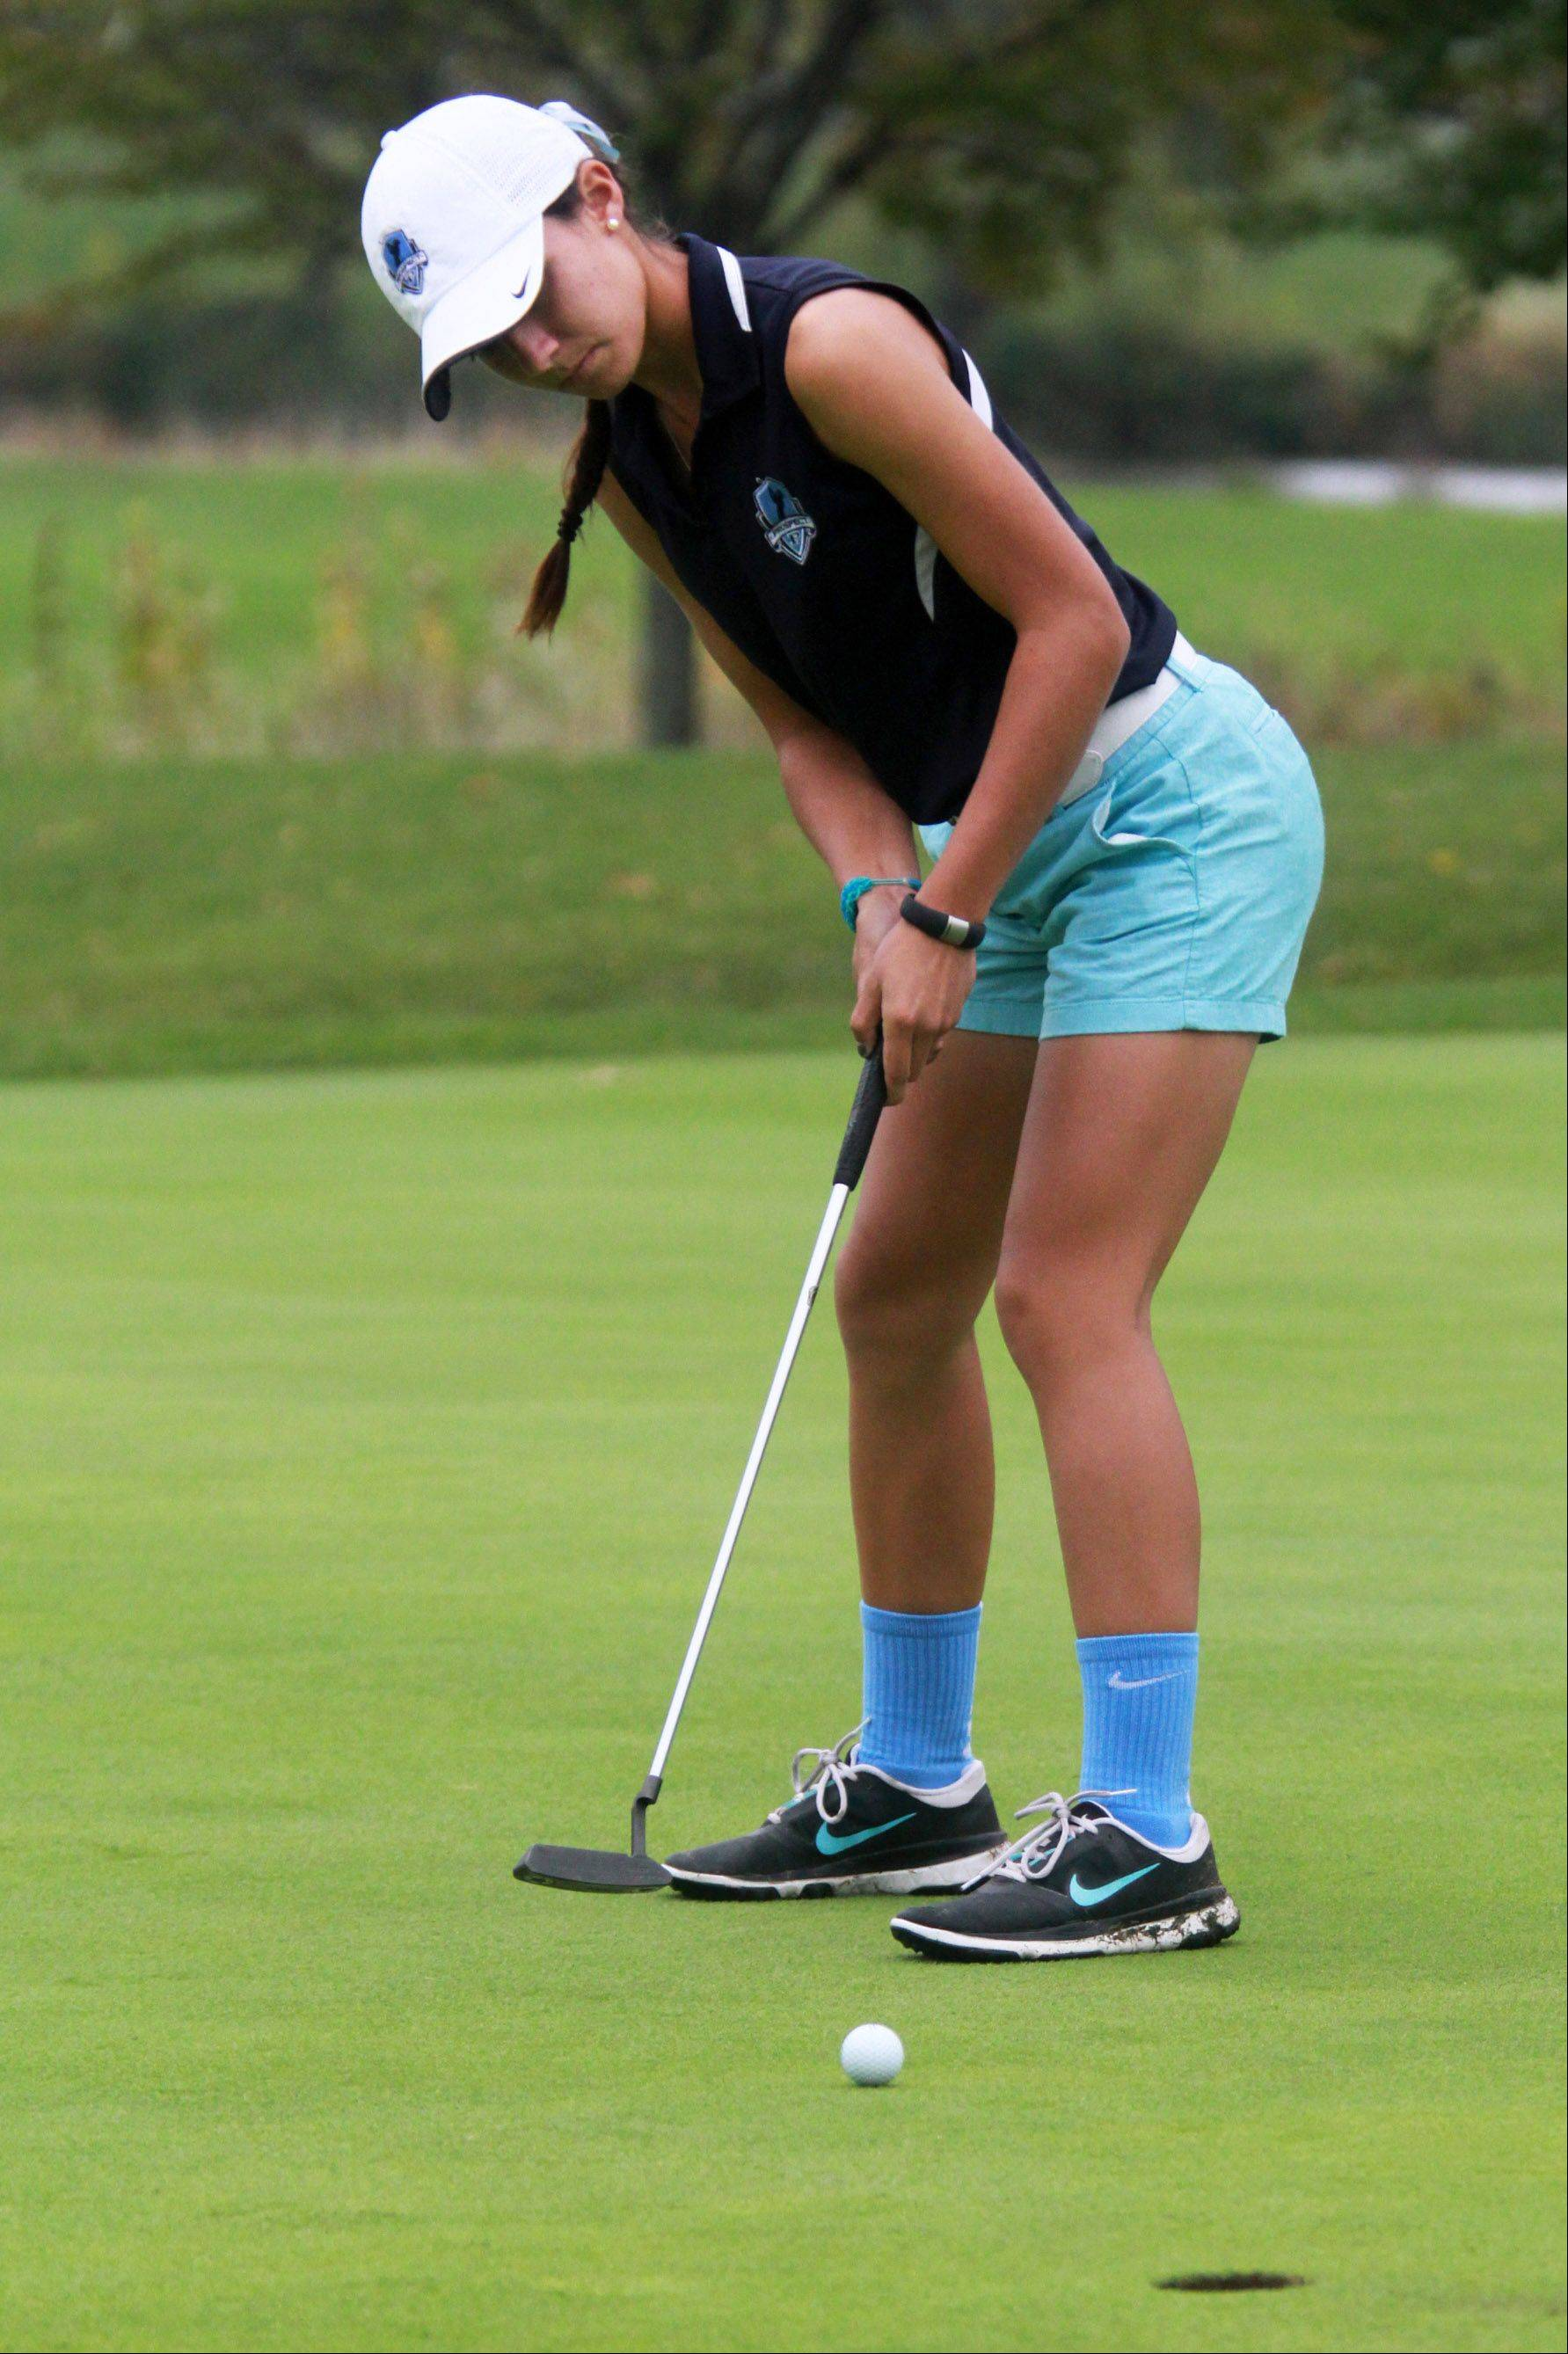 Prospect's Ally Scaccia putts on No. 9 at Fox Run Golf Course in Elk Grove Village on her way to winning the Mid-Suburban League championship with a score of 69 on Tuesday.